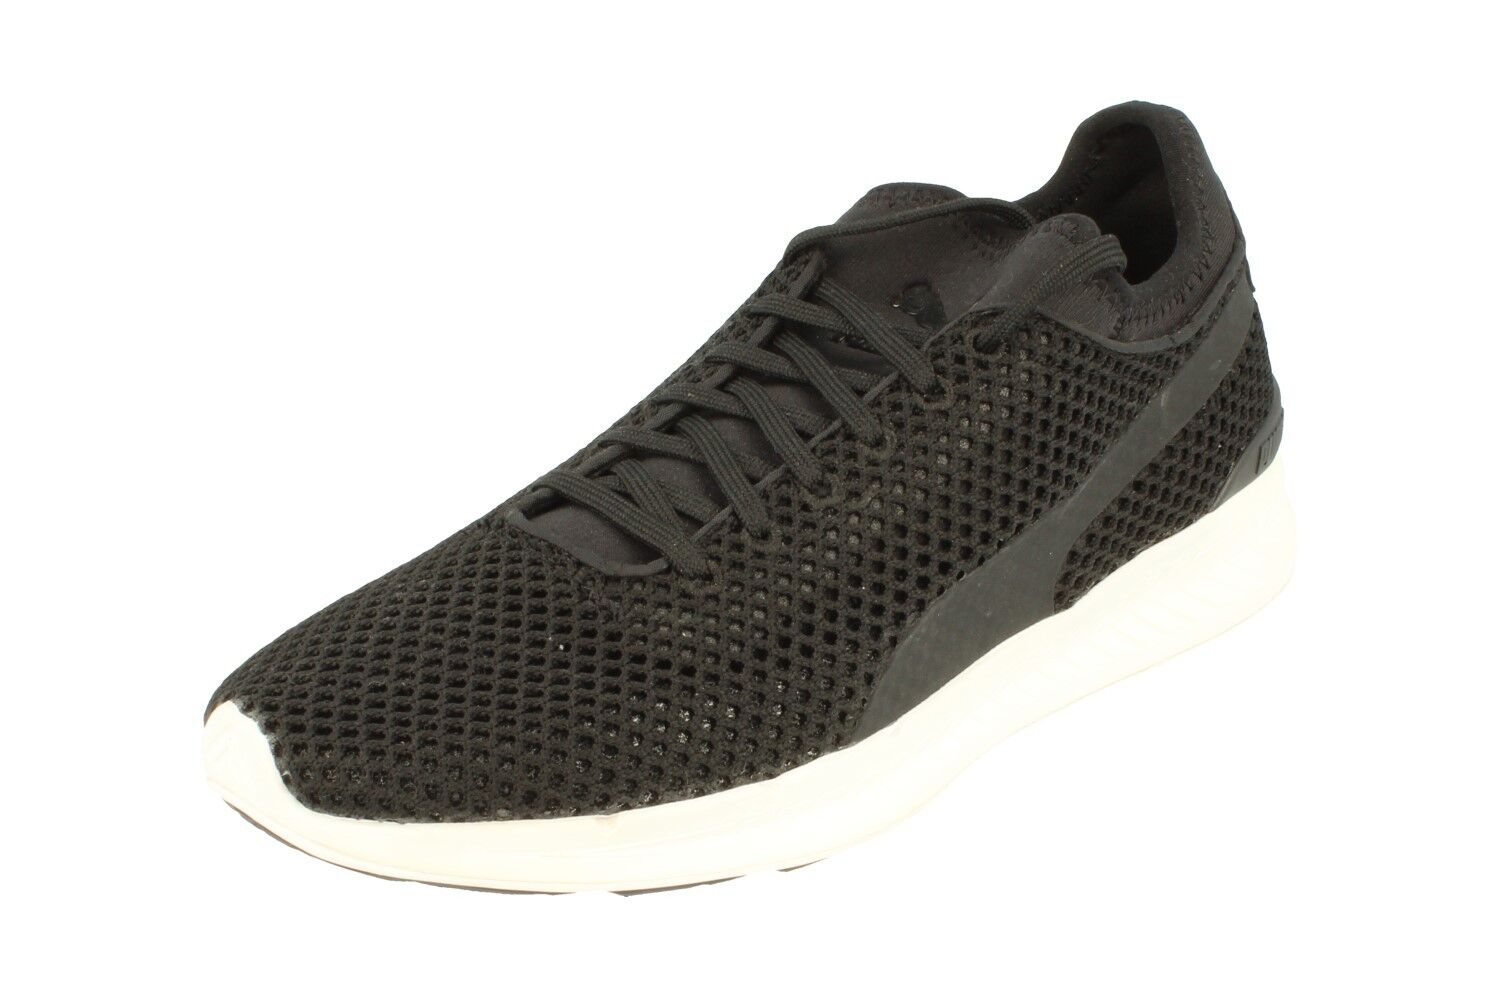 Puma Ignite 361060 Sock Knit homme fonctionnement Trainers 361060 Ignite Baskets chaussures 03 361837